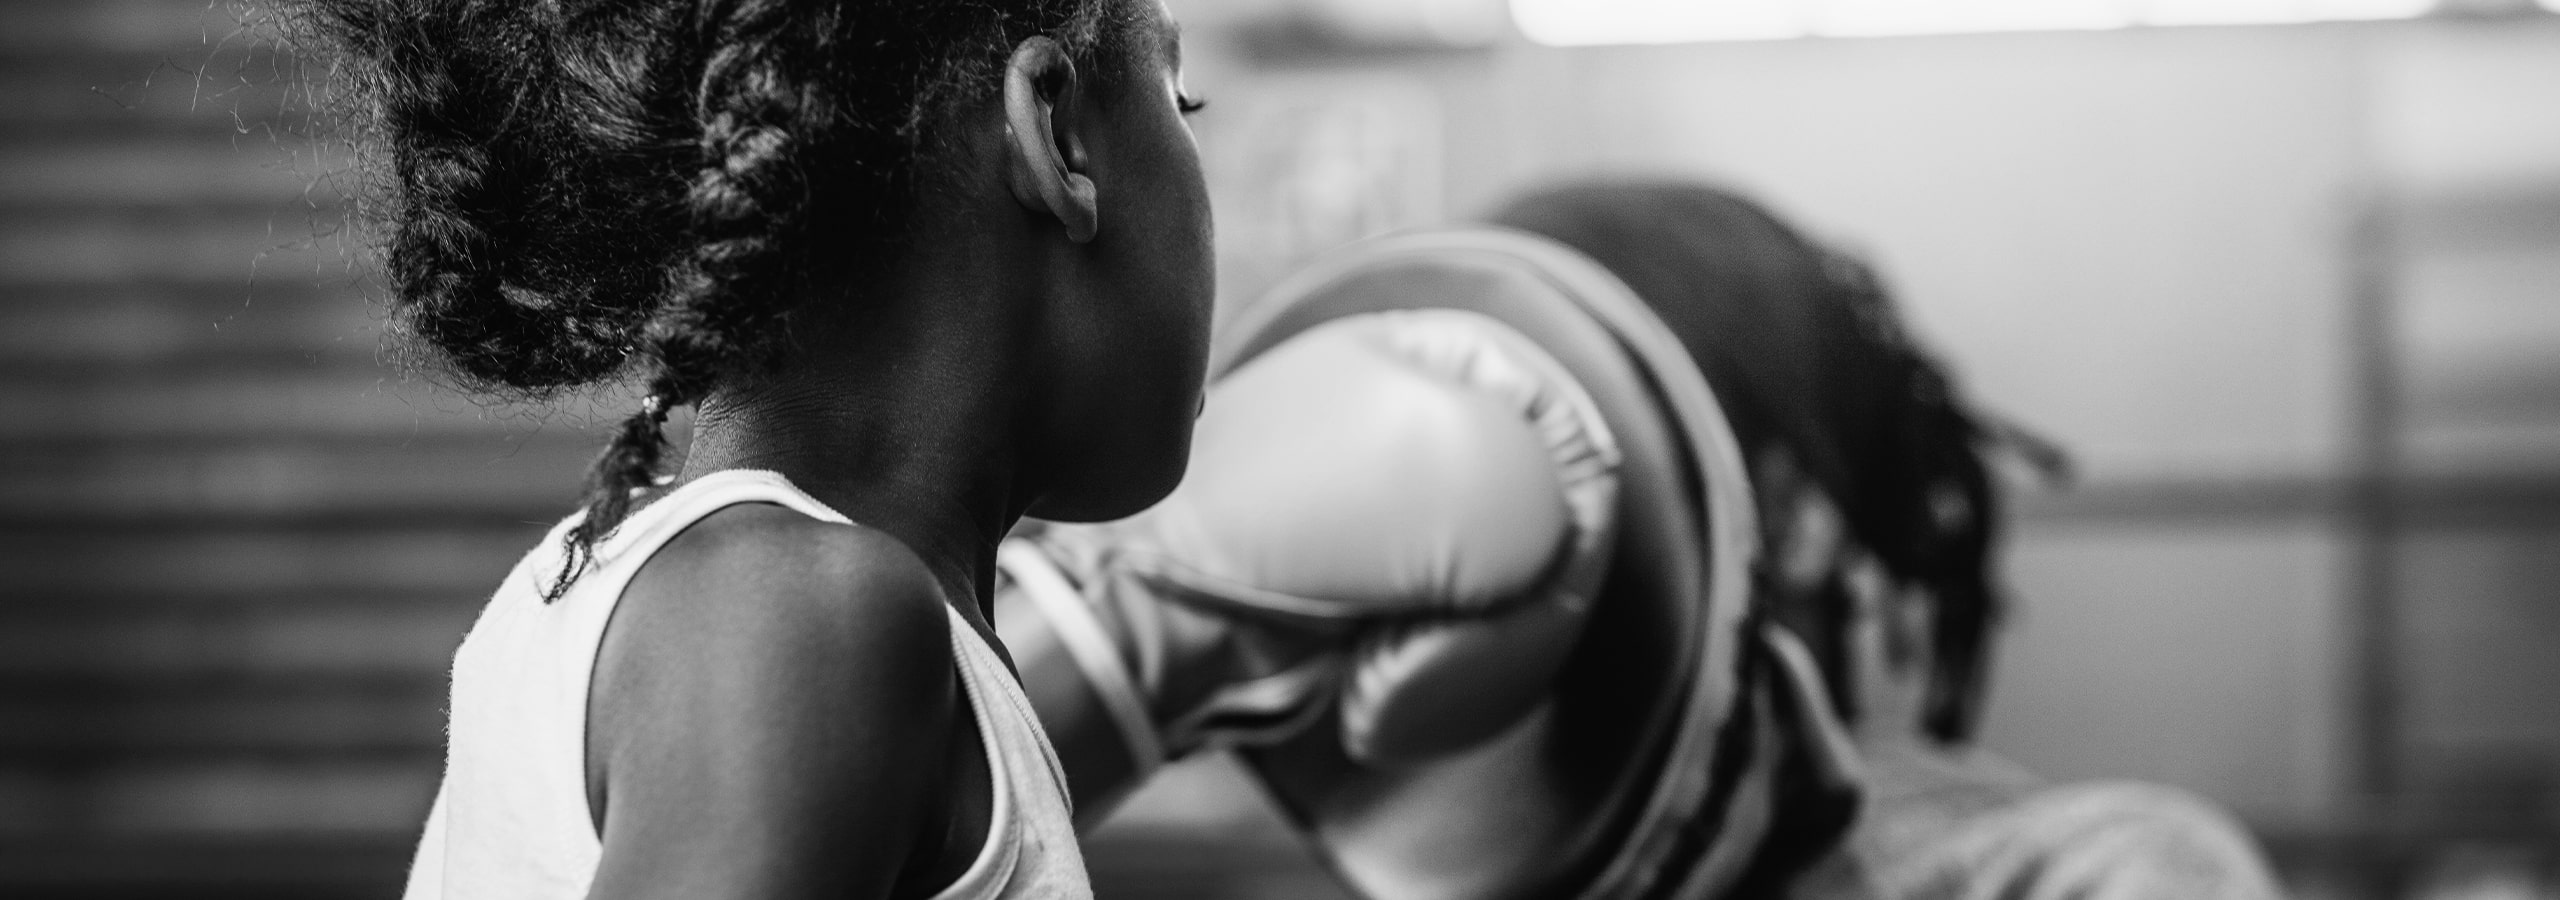 Axe-Gym-Thaiboxen-Kids-Header